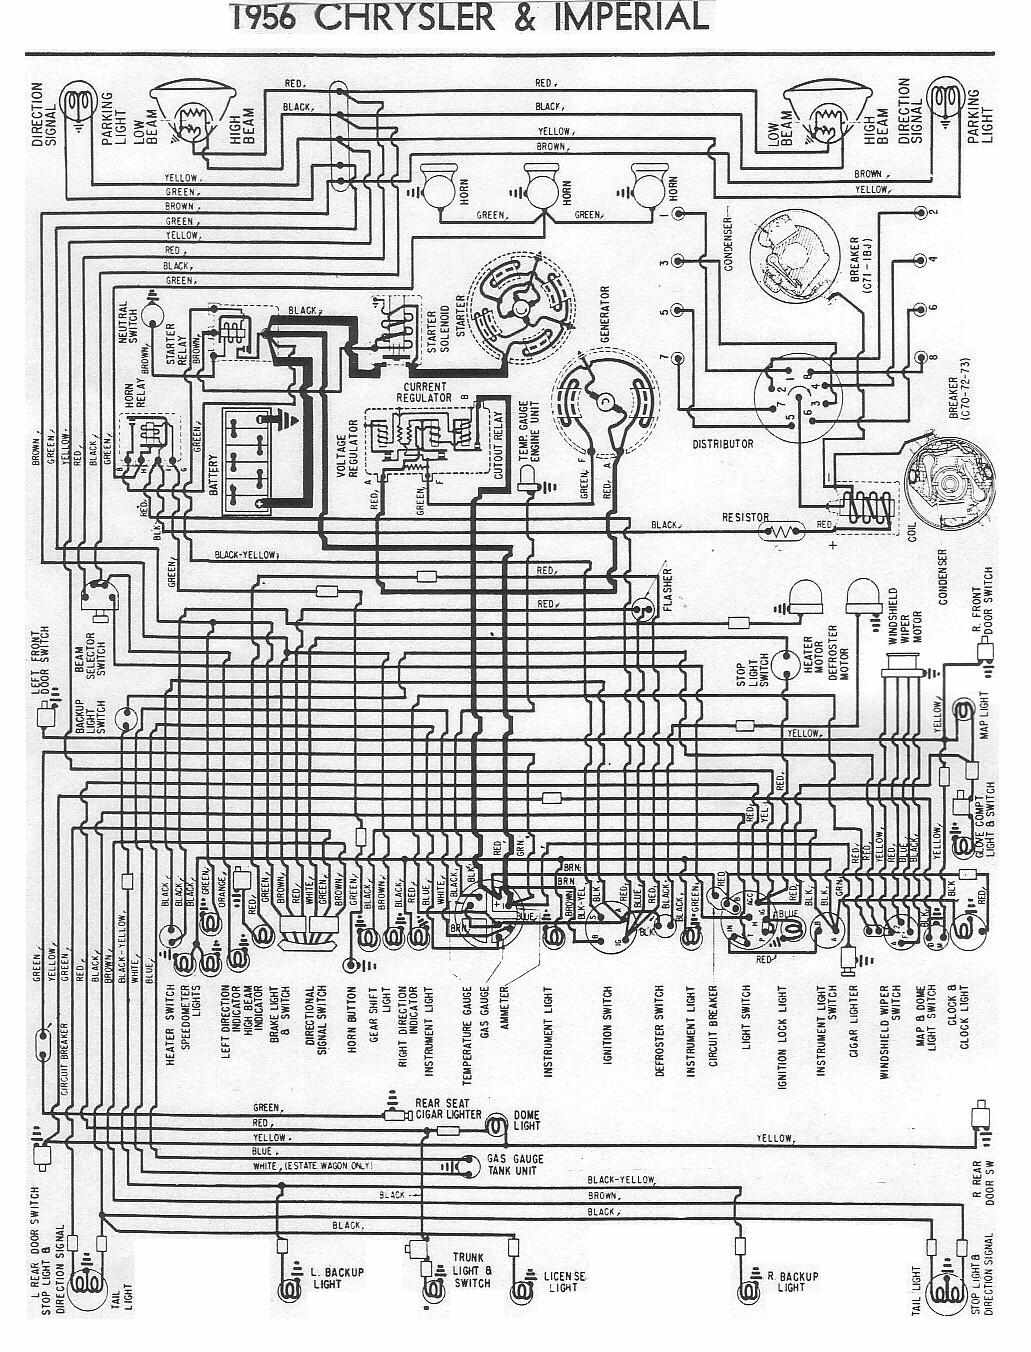 1956 chrysler wiring diagram wiring diagram gowiring diagram of 1956 chrysler and imperial circuit wiring wiring [ 1031 x 1352 Pixel ]